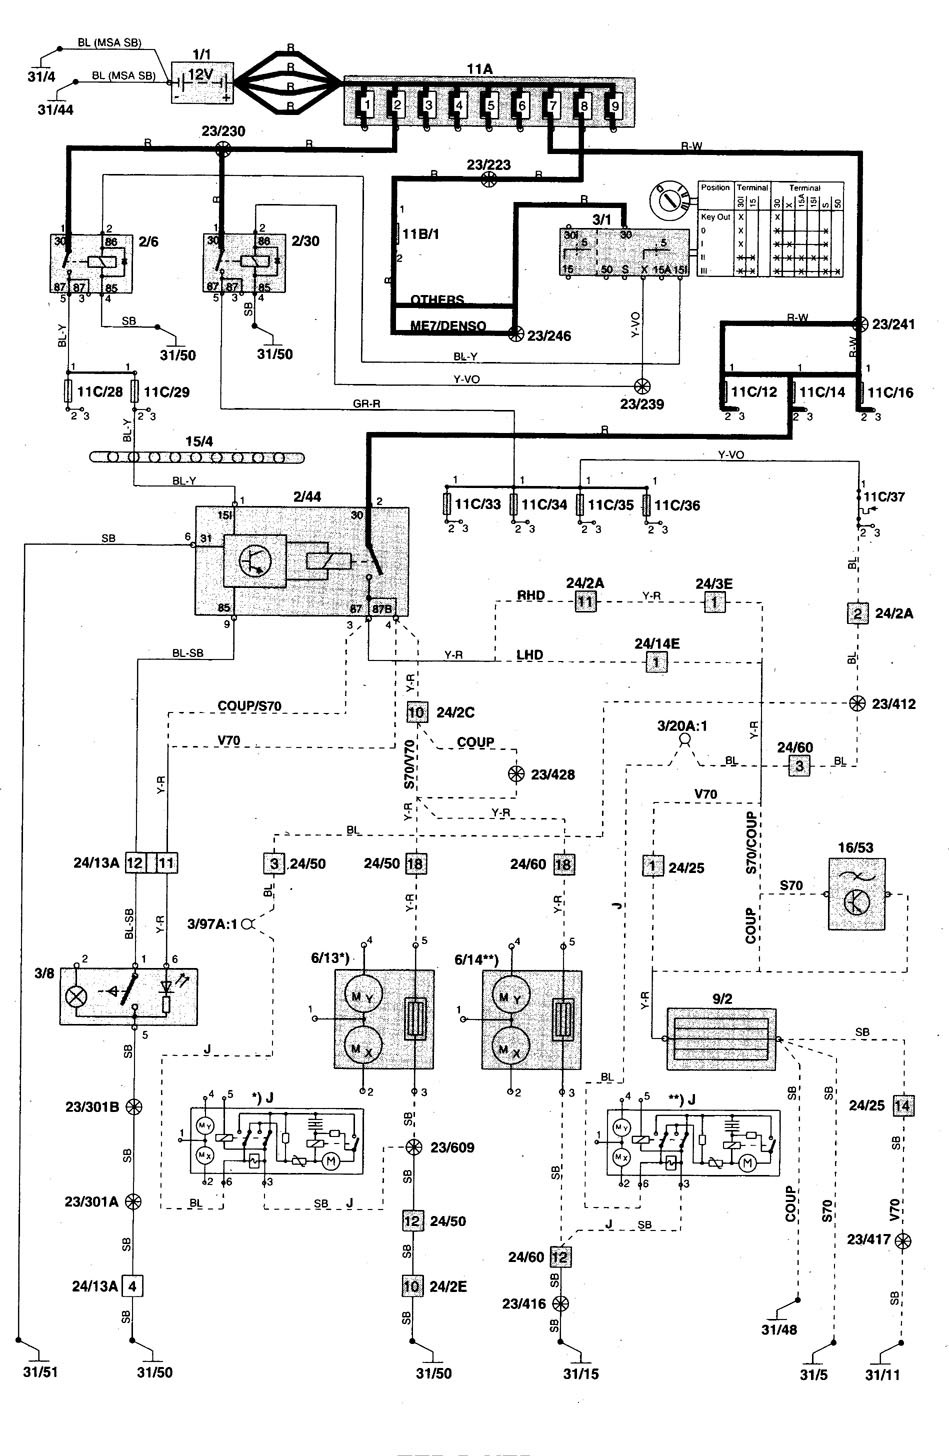 Buzzer Wiring Volvo - Wiring Diagram Sys on volvo sport, volvo type r, volvo truck radio wiring harness, volvo recall information, volvo s60 fuse diagram, volvo fuse box location, volvo brakes, volvo 740 diagram, international truck electrical diagrams, volvo dashboard, volvo tools, volvo maintenance schedule, volvo xc90 fuse diagram, volvo exhaust, volvo ignition, volvo relay diagram, volvo battery, volvo yaw rate sensor, volvo snowmobile, volvo girls,